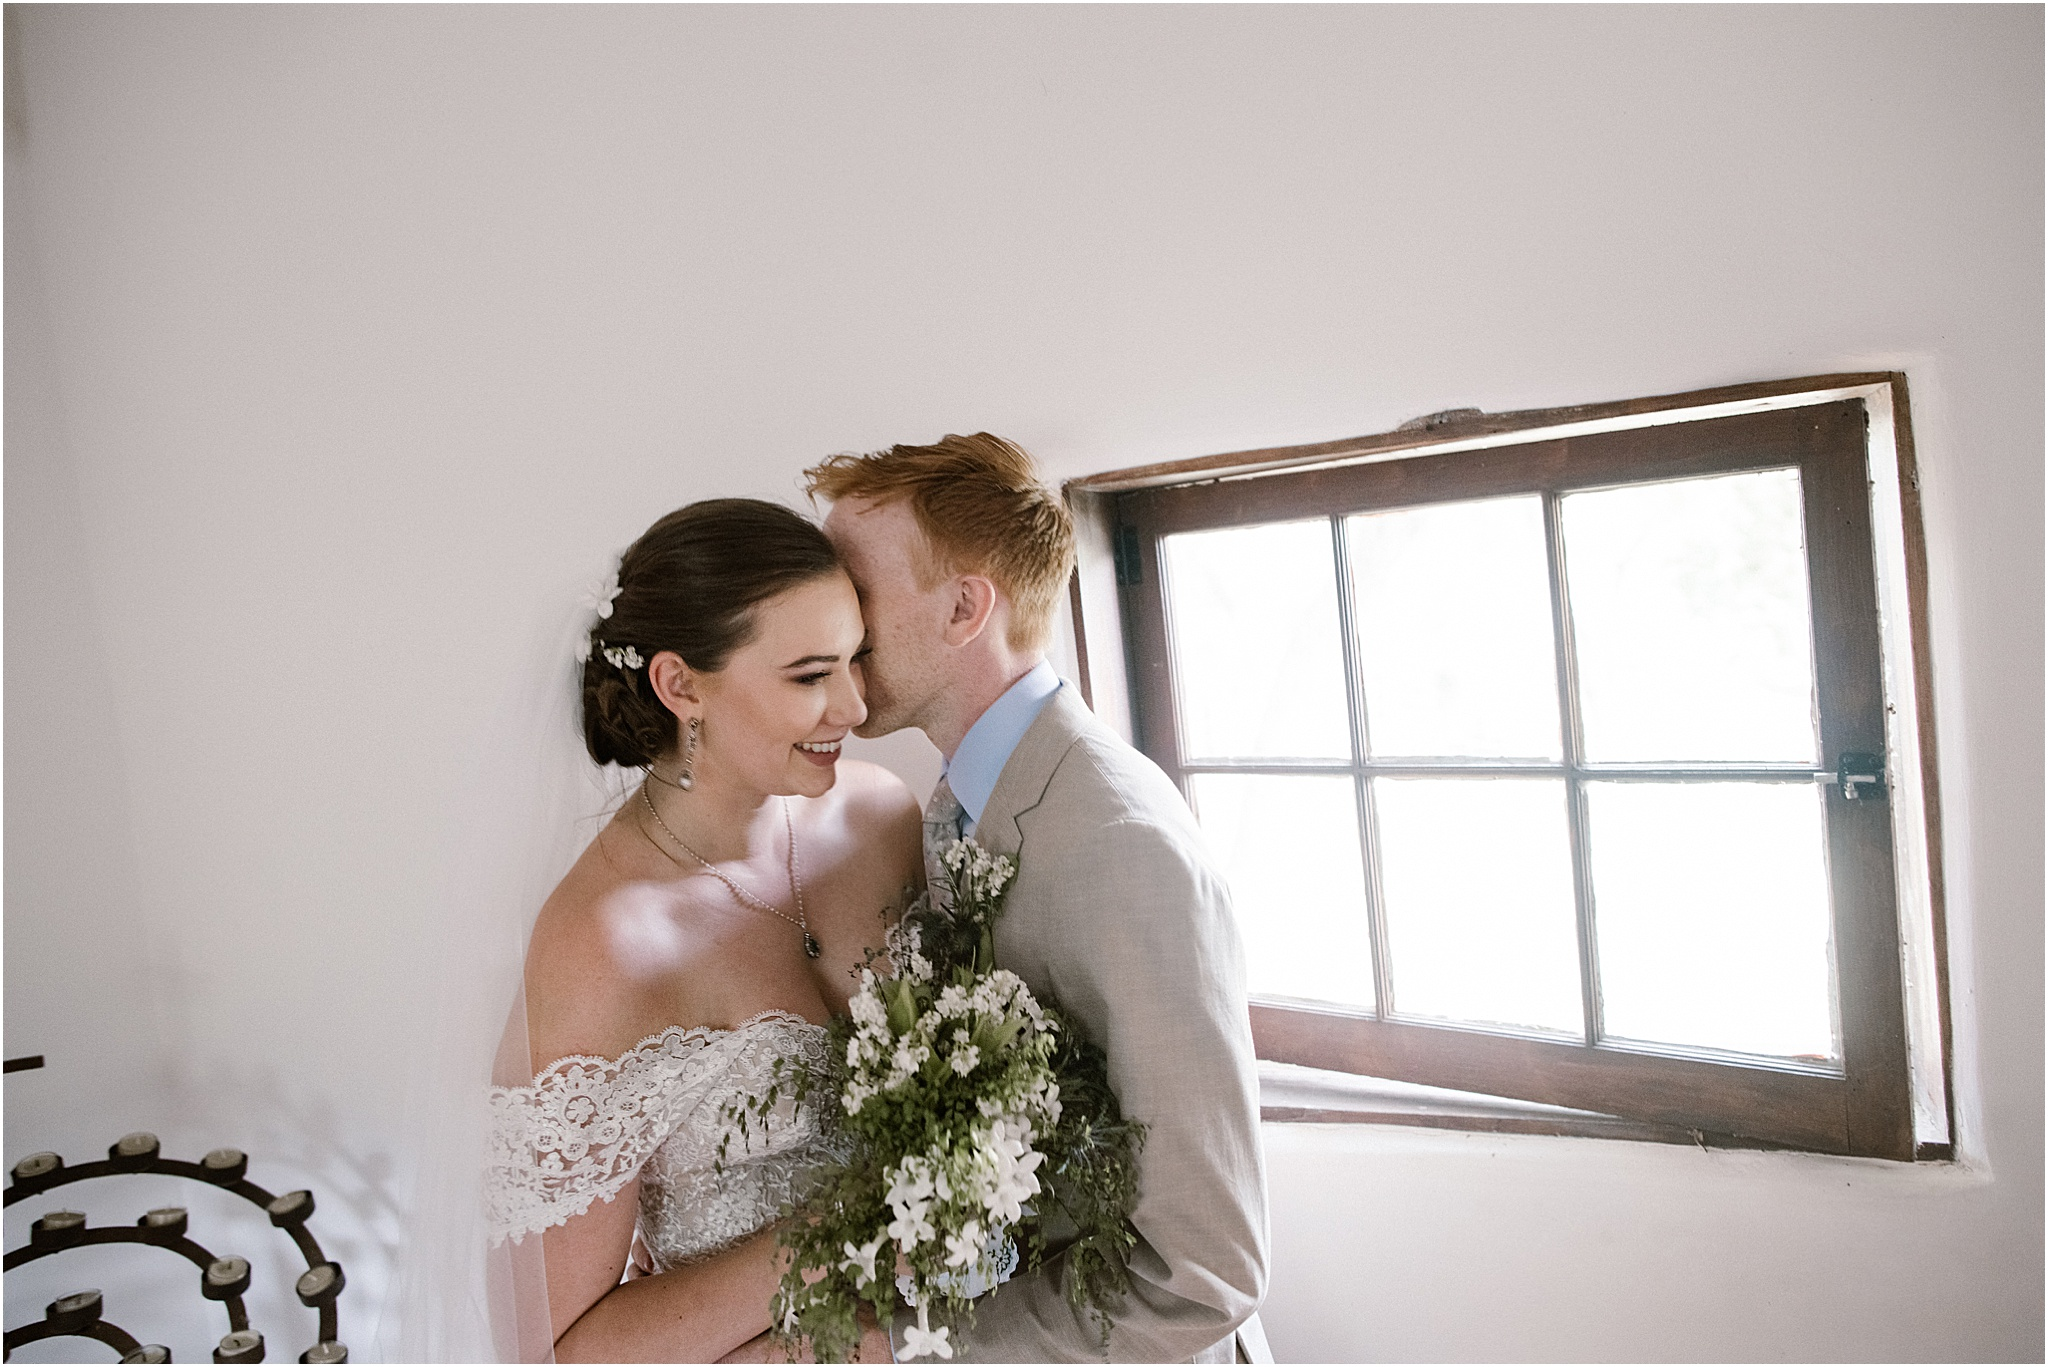 AMELIA_JASON_SANTA FE_ WEDDING_BLUE ROSE PHOTOGRAPHY78